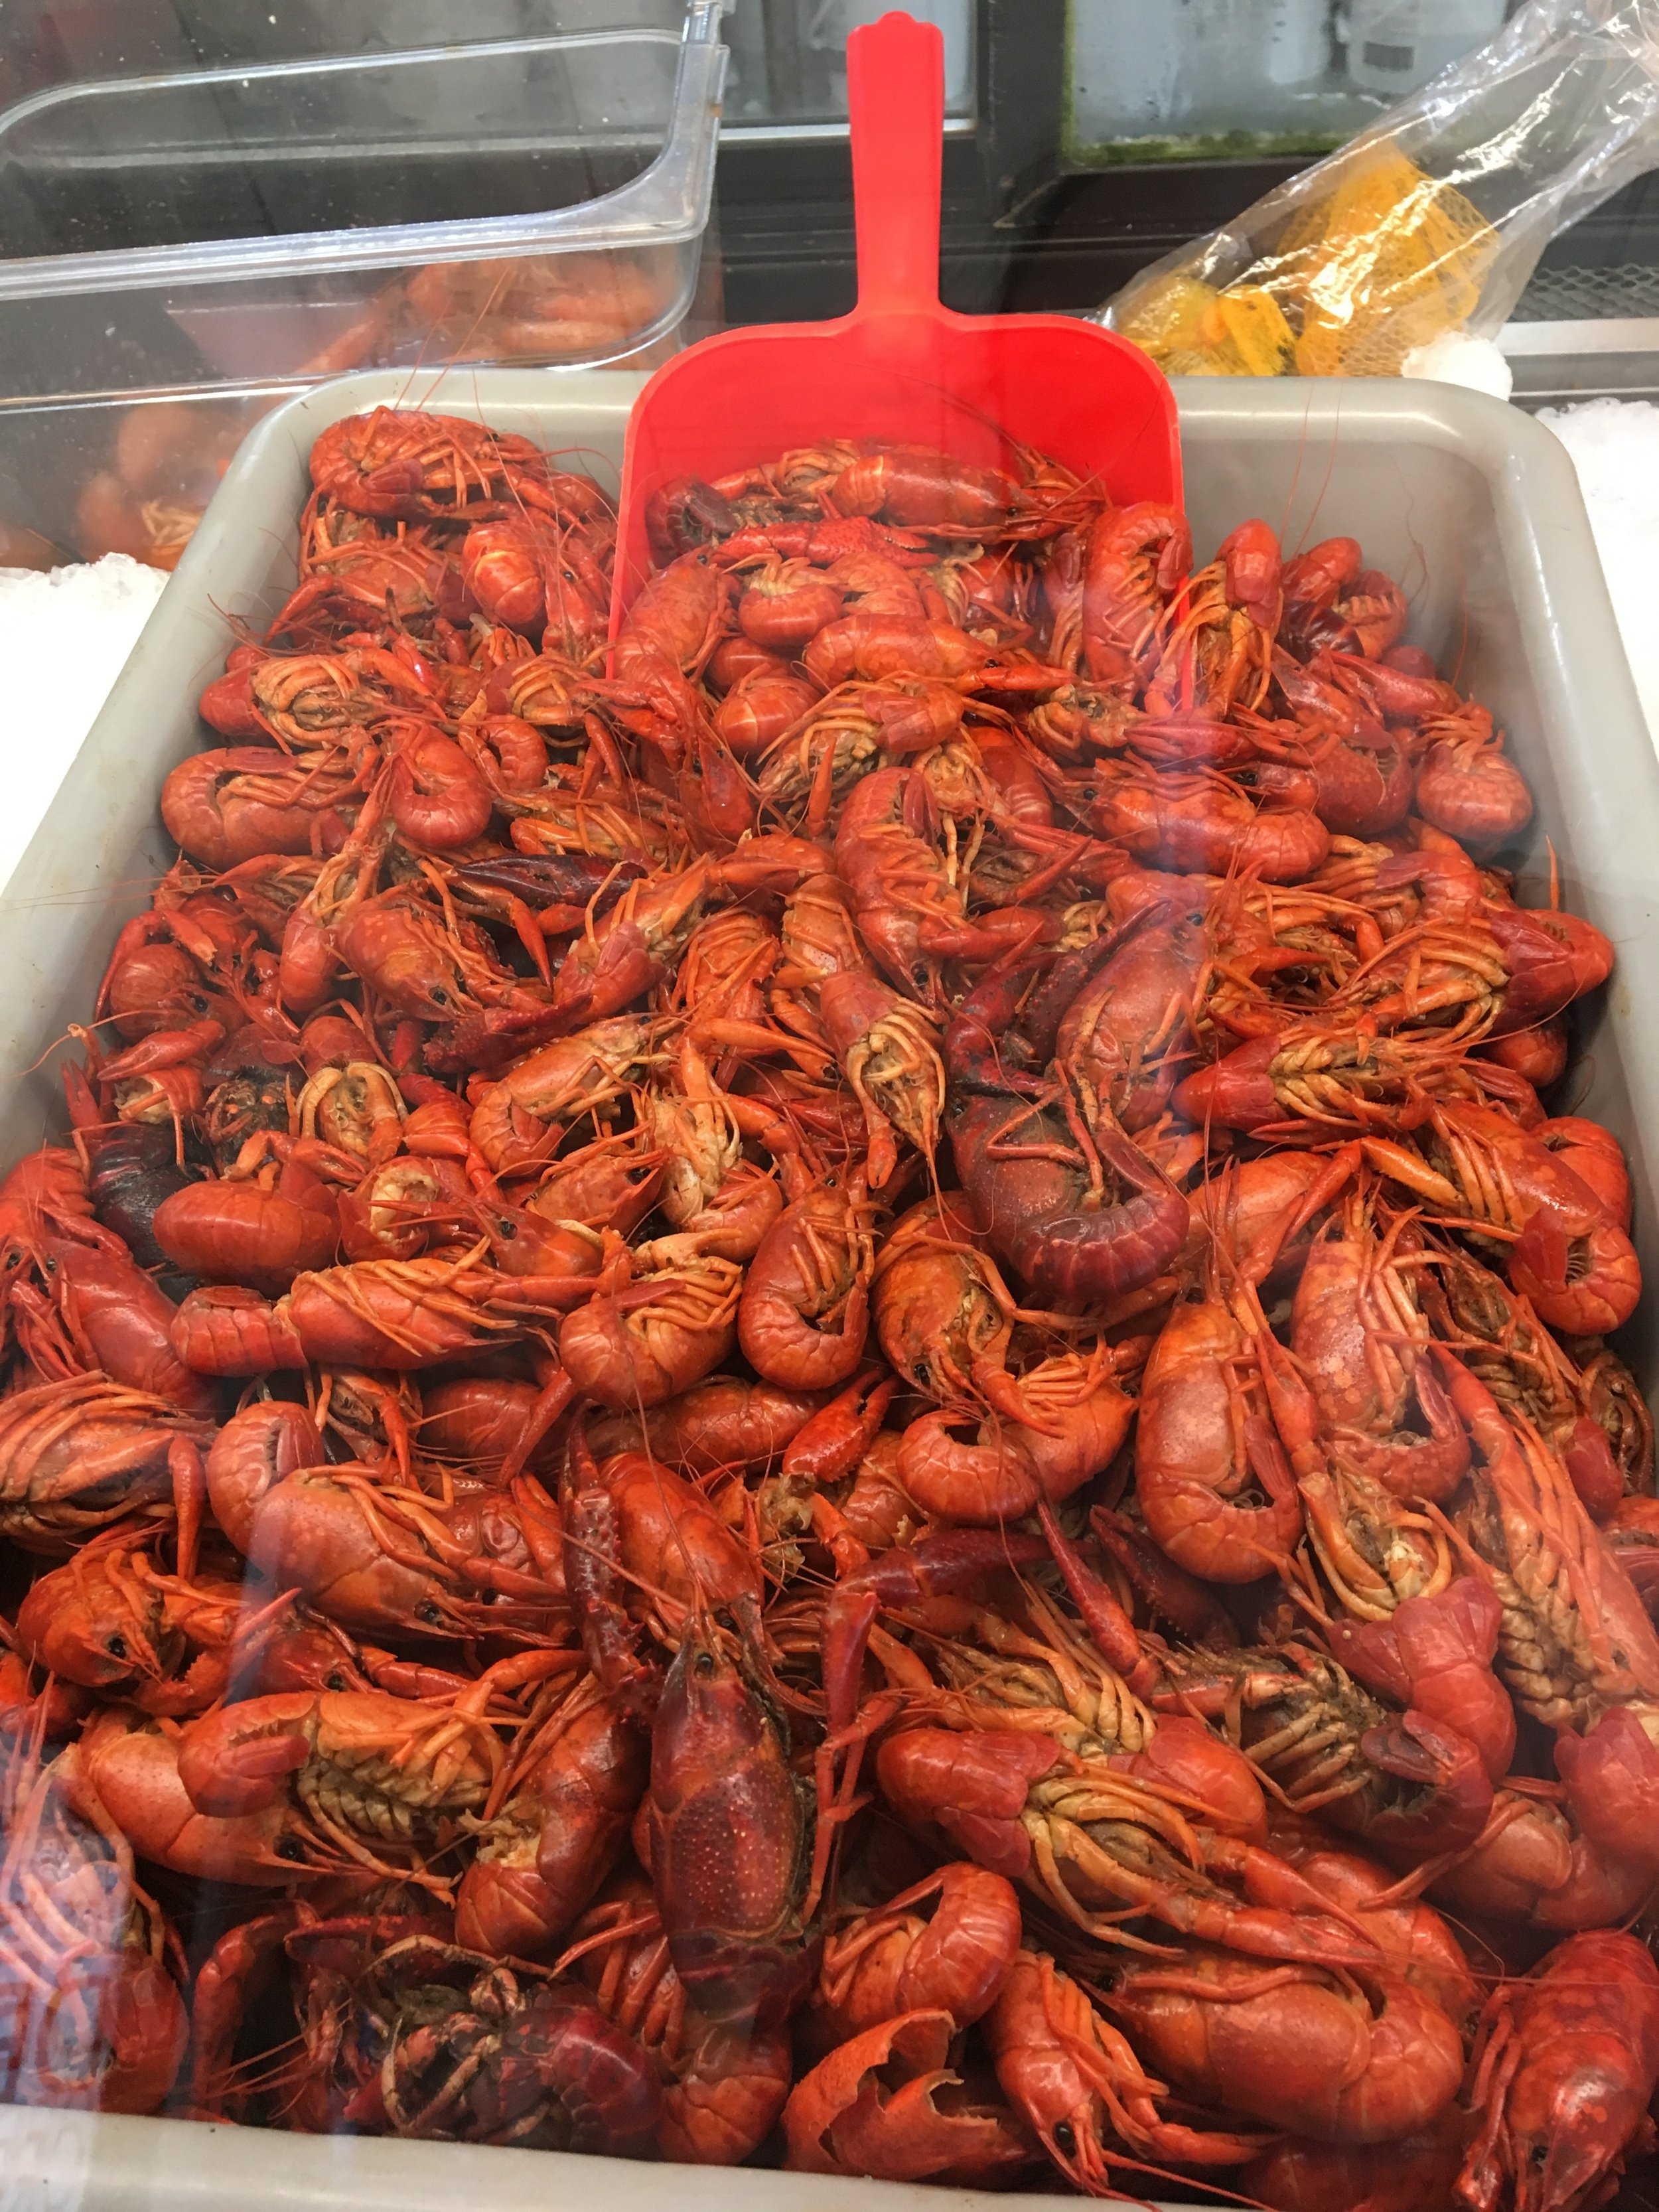 Crawfish in Louisiana.JPG